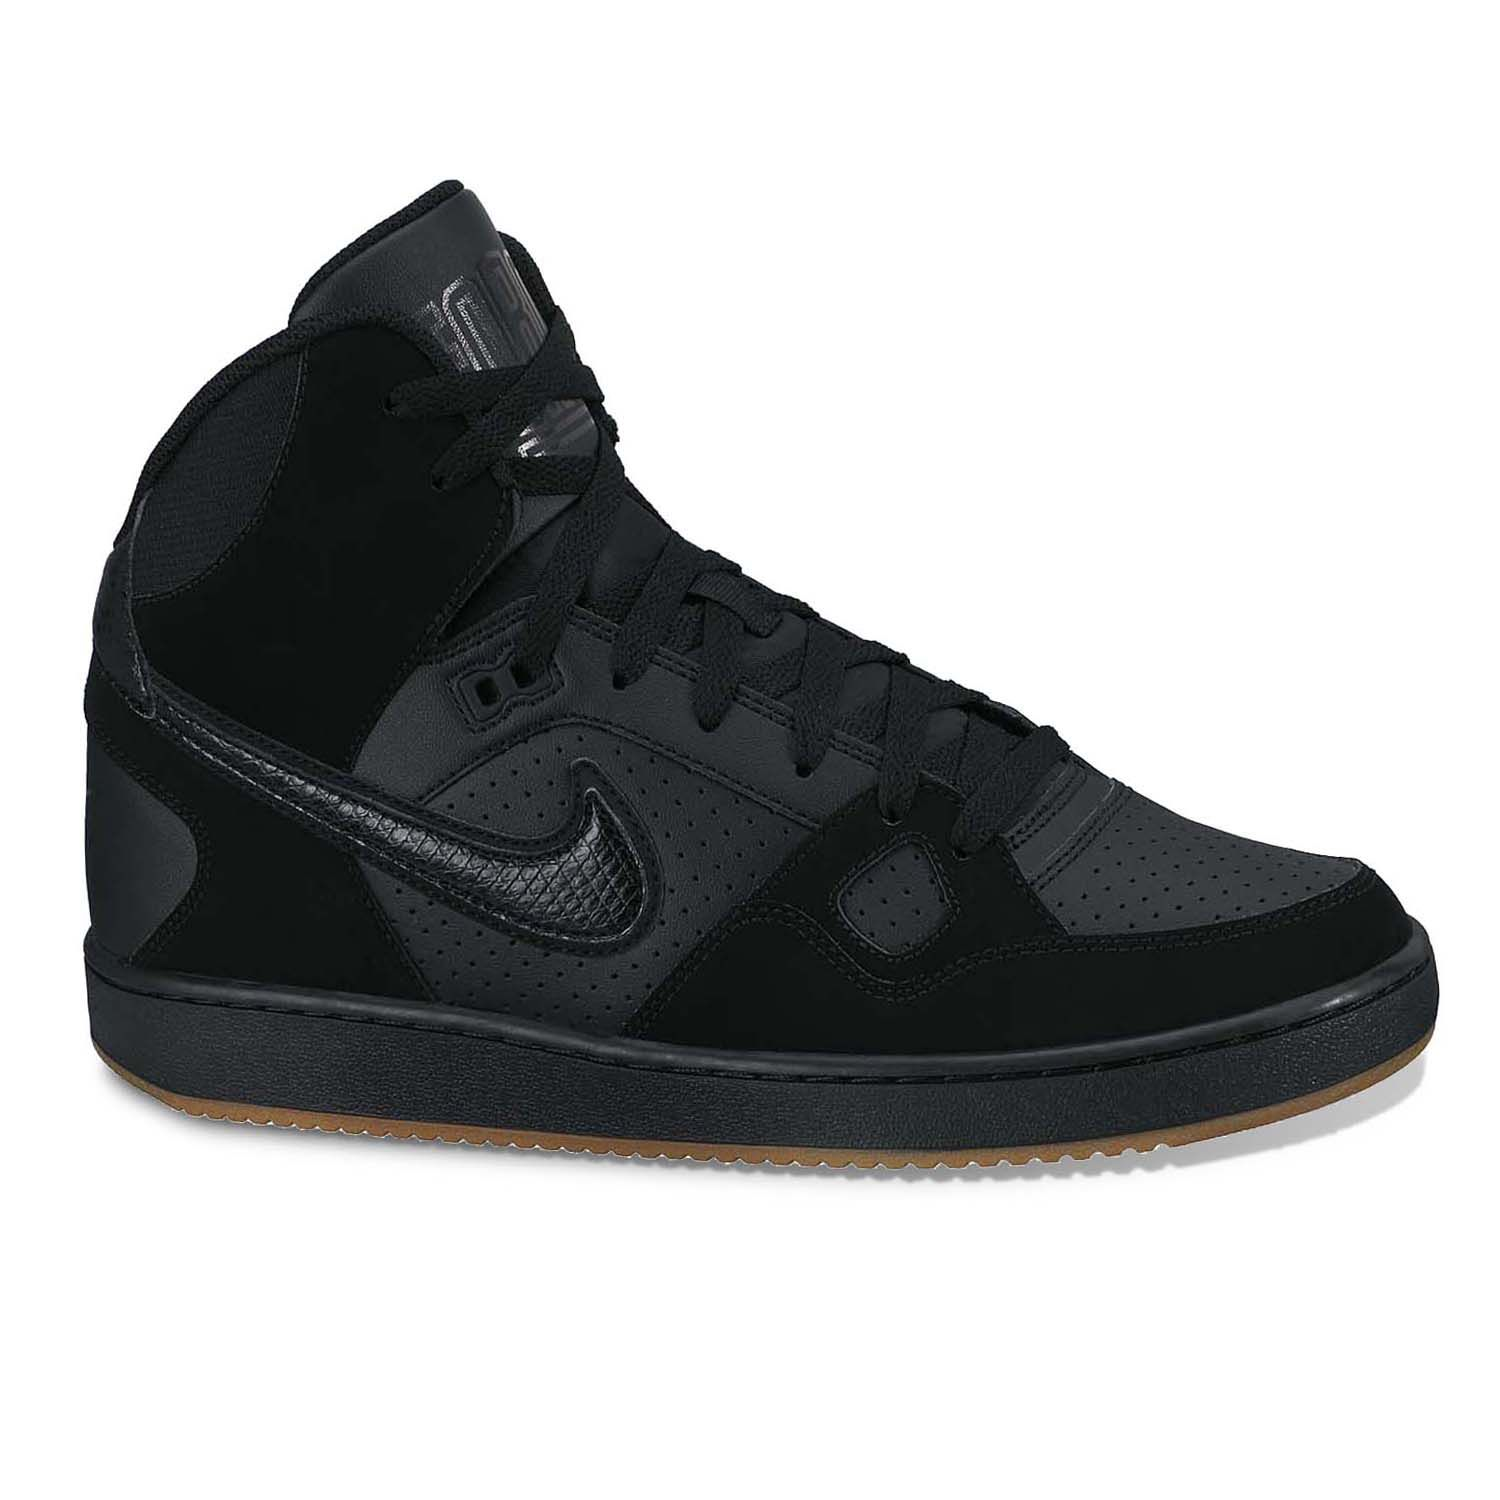 Force Nike Shoes